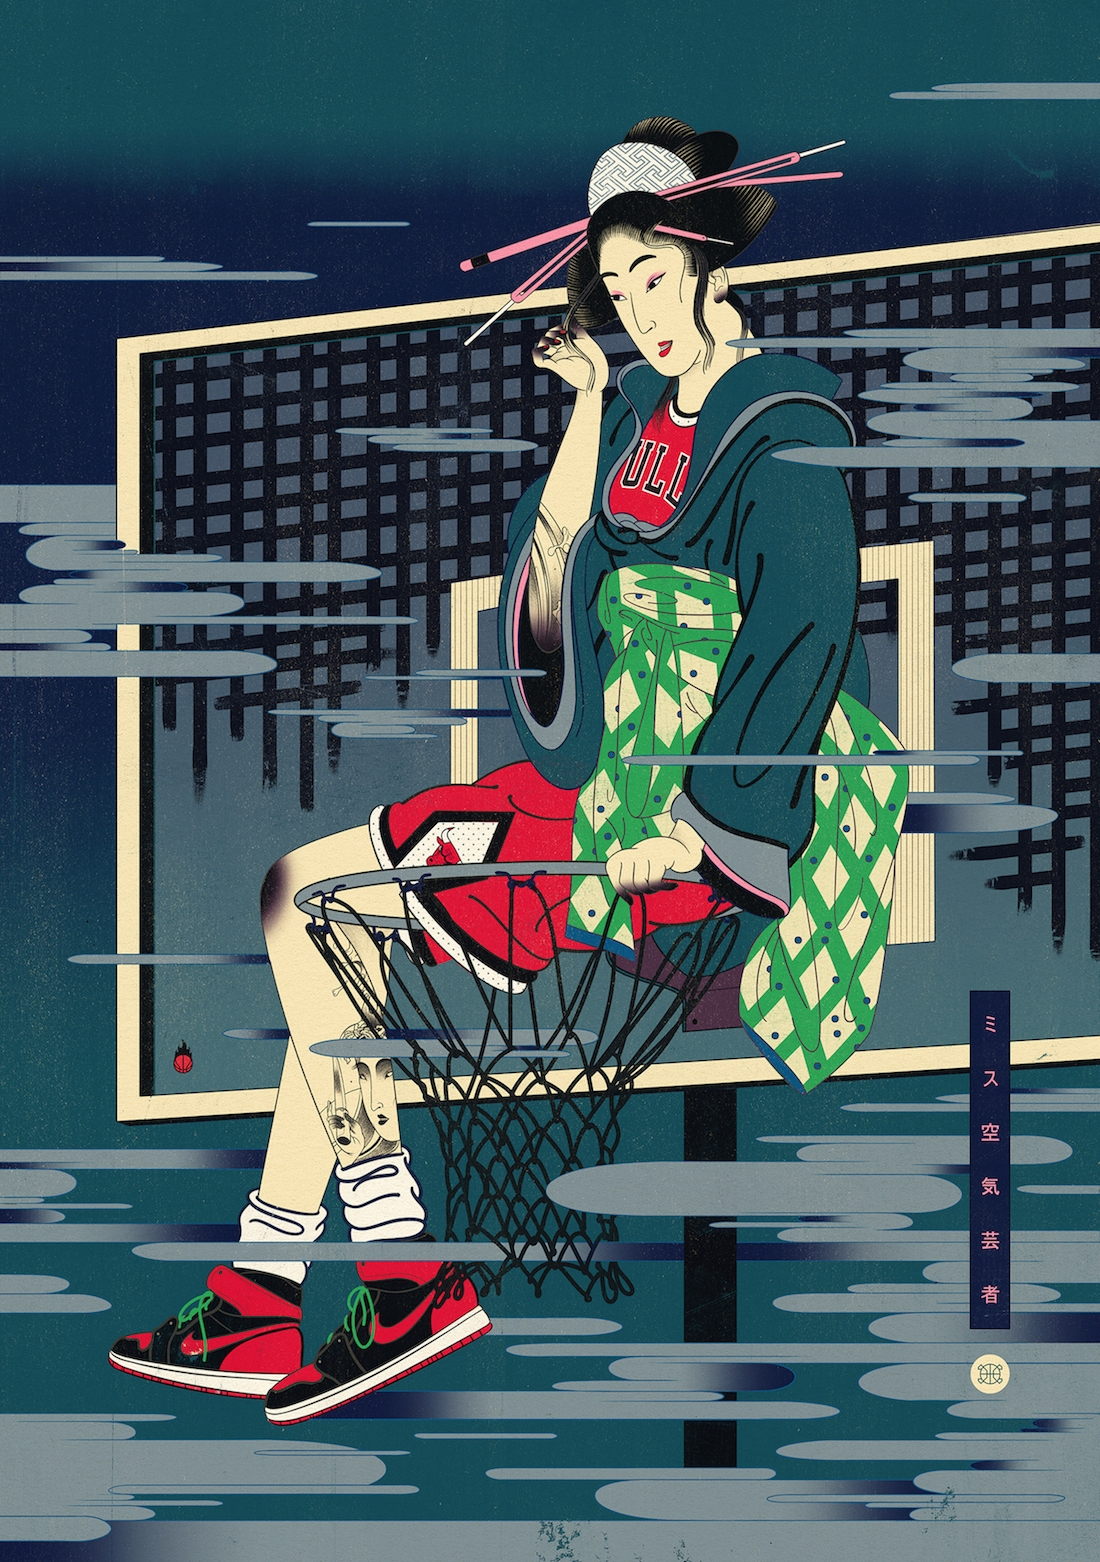 Illustrations Mixing Japanse Art & Basketball (5 pics)